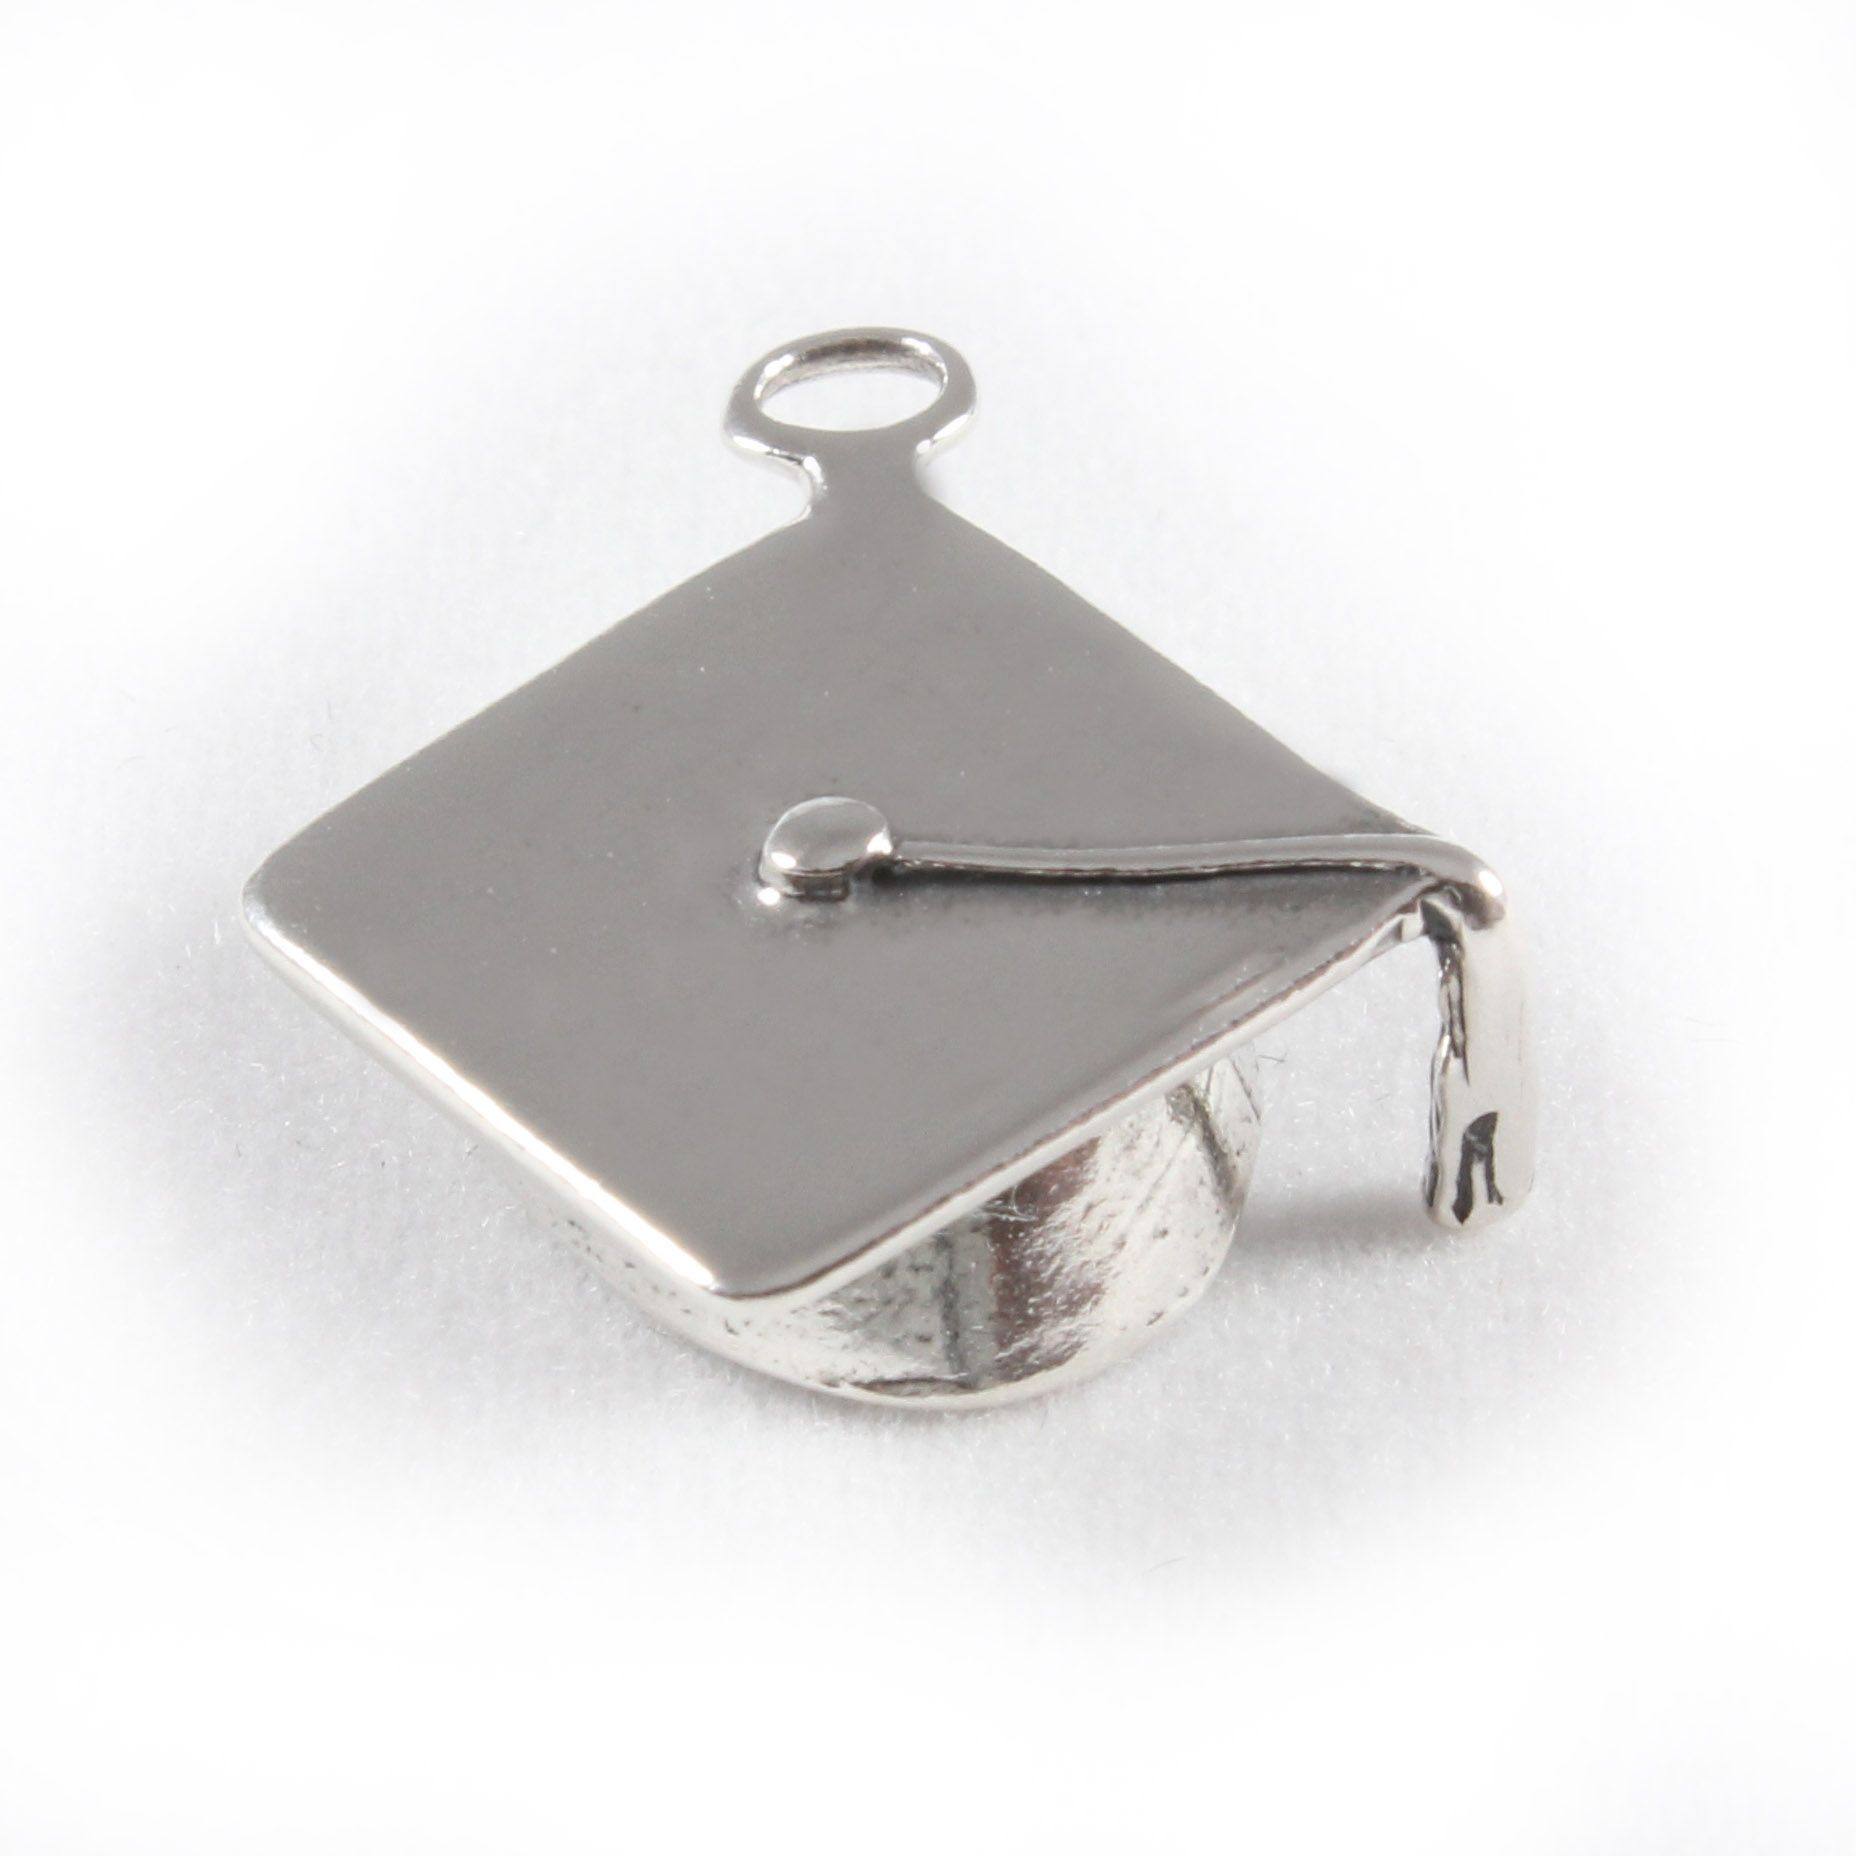 Charm School Uk Gt Sterling Silver Charms Gt Miscellaneous